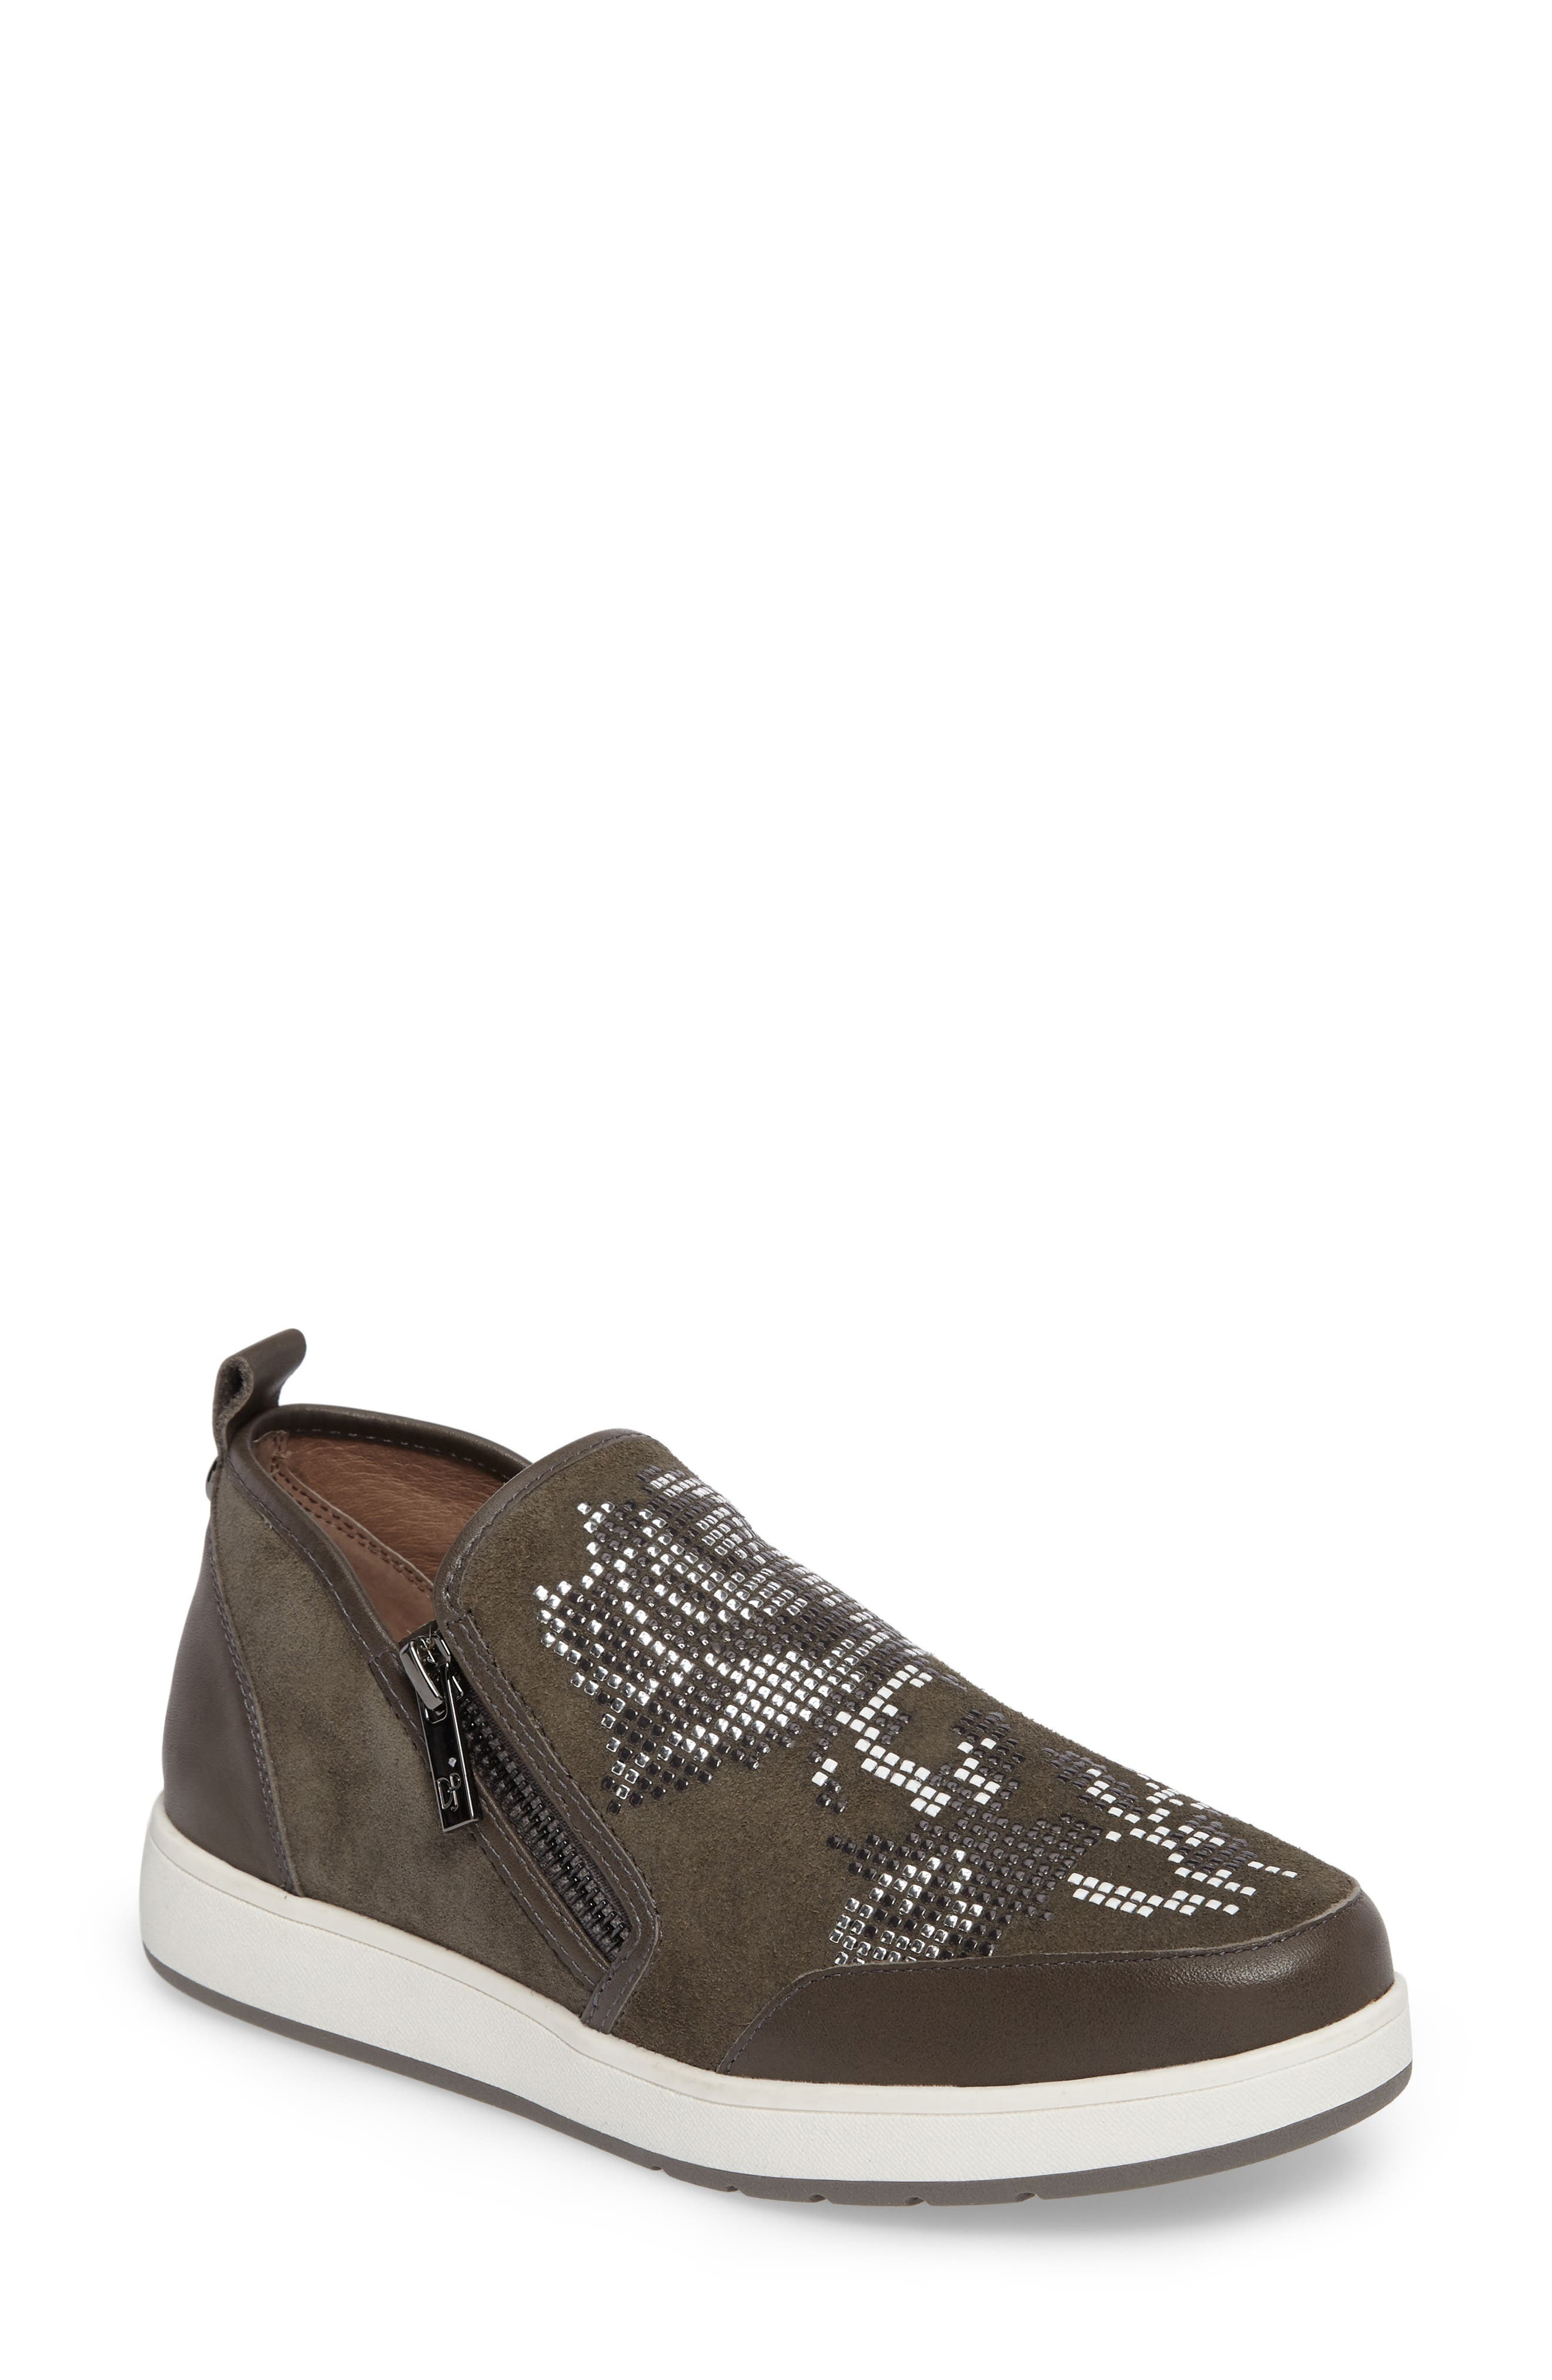 Alternate Image 1 Selected - Donald J Pliner Mylasp Embellished Sneaker (Women)